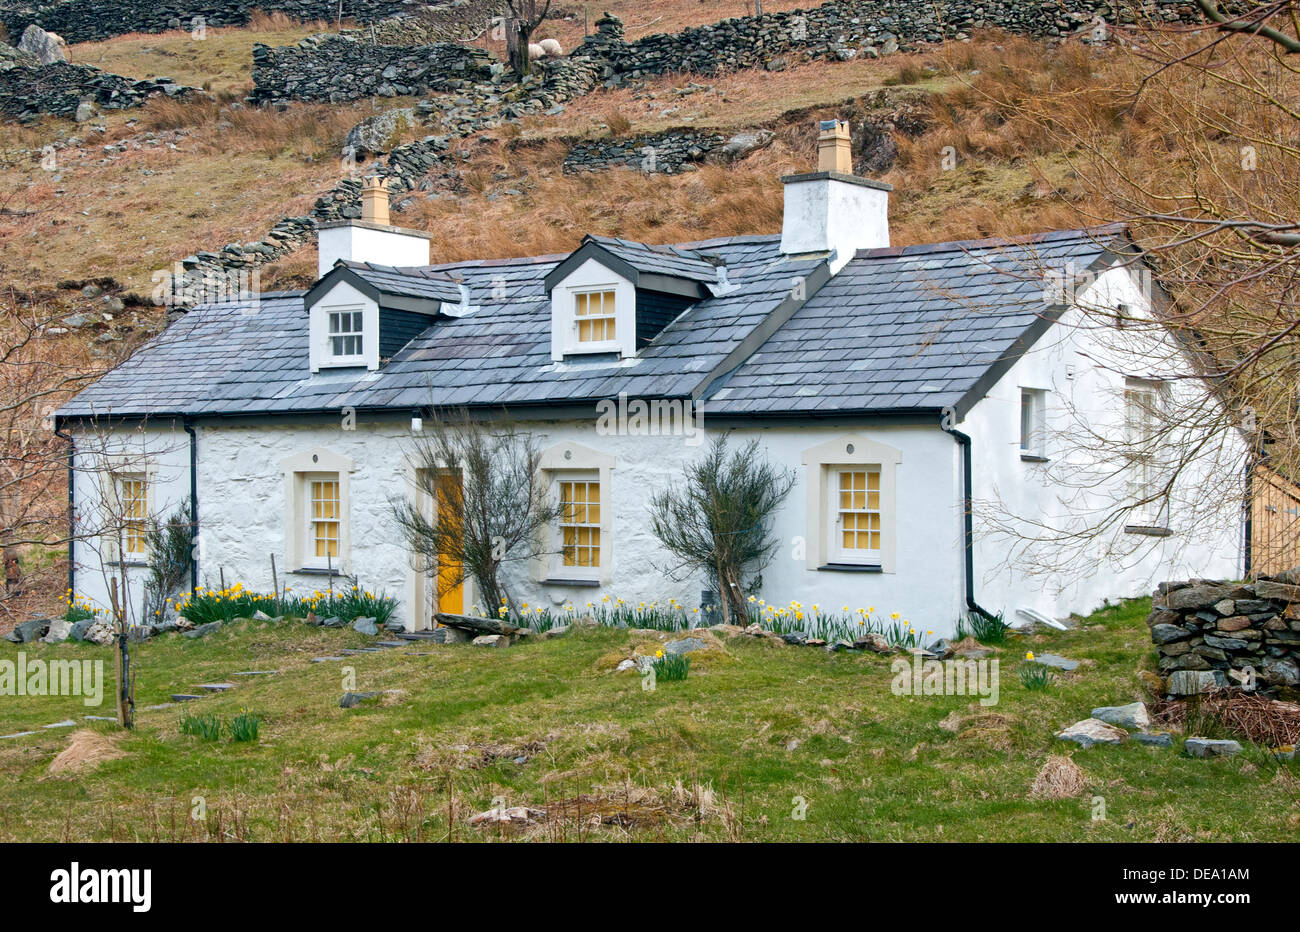 Cottage gallois traditionnel blanchi à la chaux au printemps, Nant Peris, Llanberis Pass , Parc National de Snowdonia, le Nord du Pays de Galles, Royaume-Uni Photo Stock